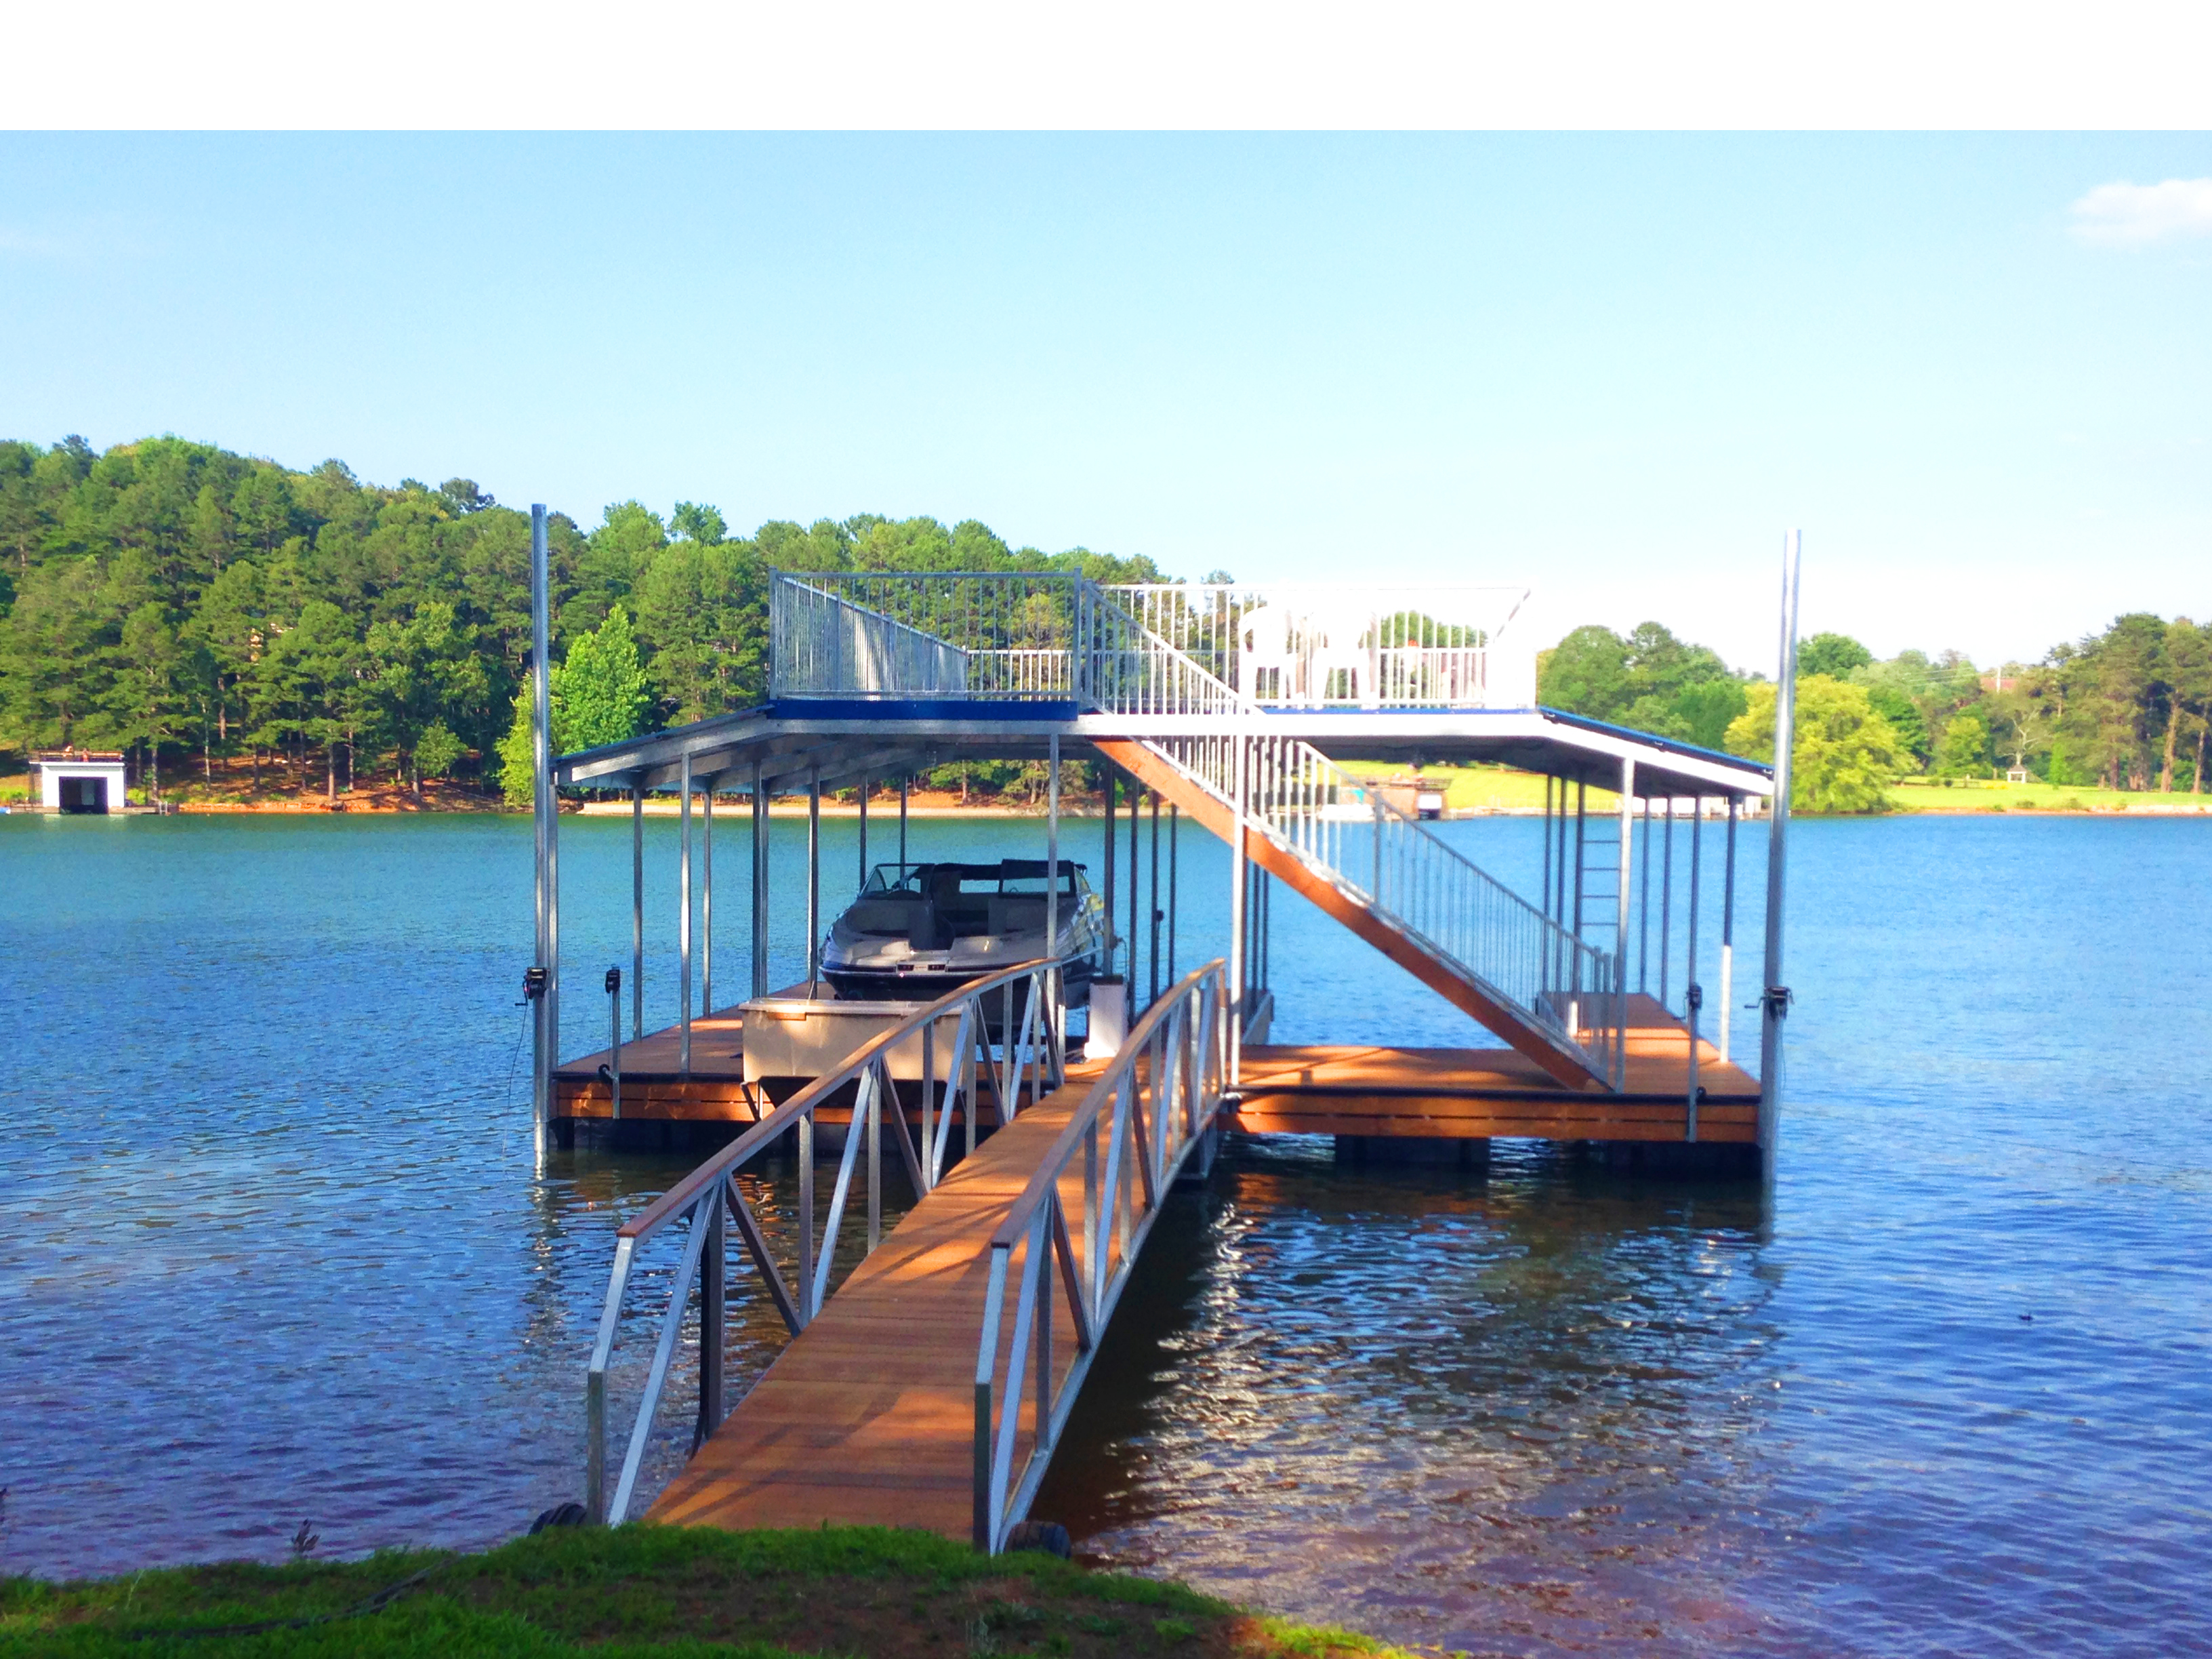 How Much Does It Cost To Get A Cdl >> How Much Does It Cost To Install A Boat Dock - About Dock Photos Mtgimage.Org